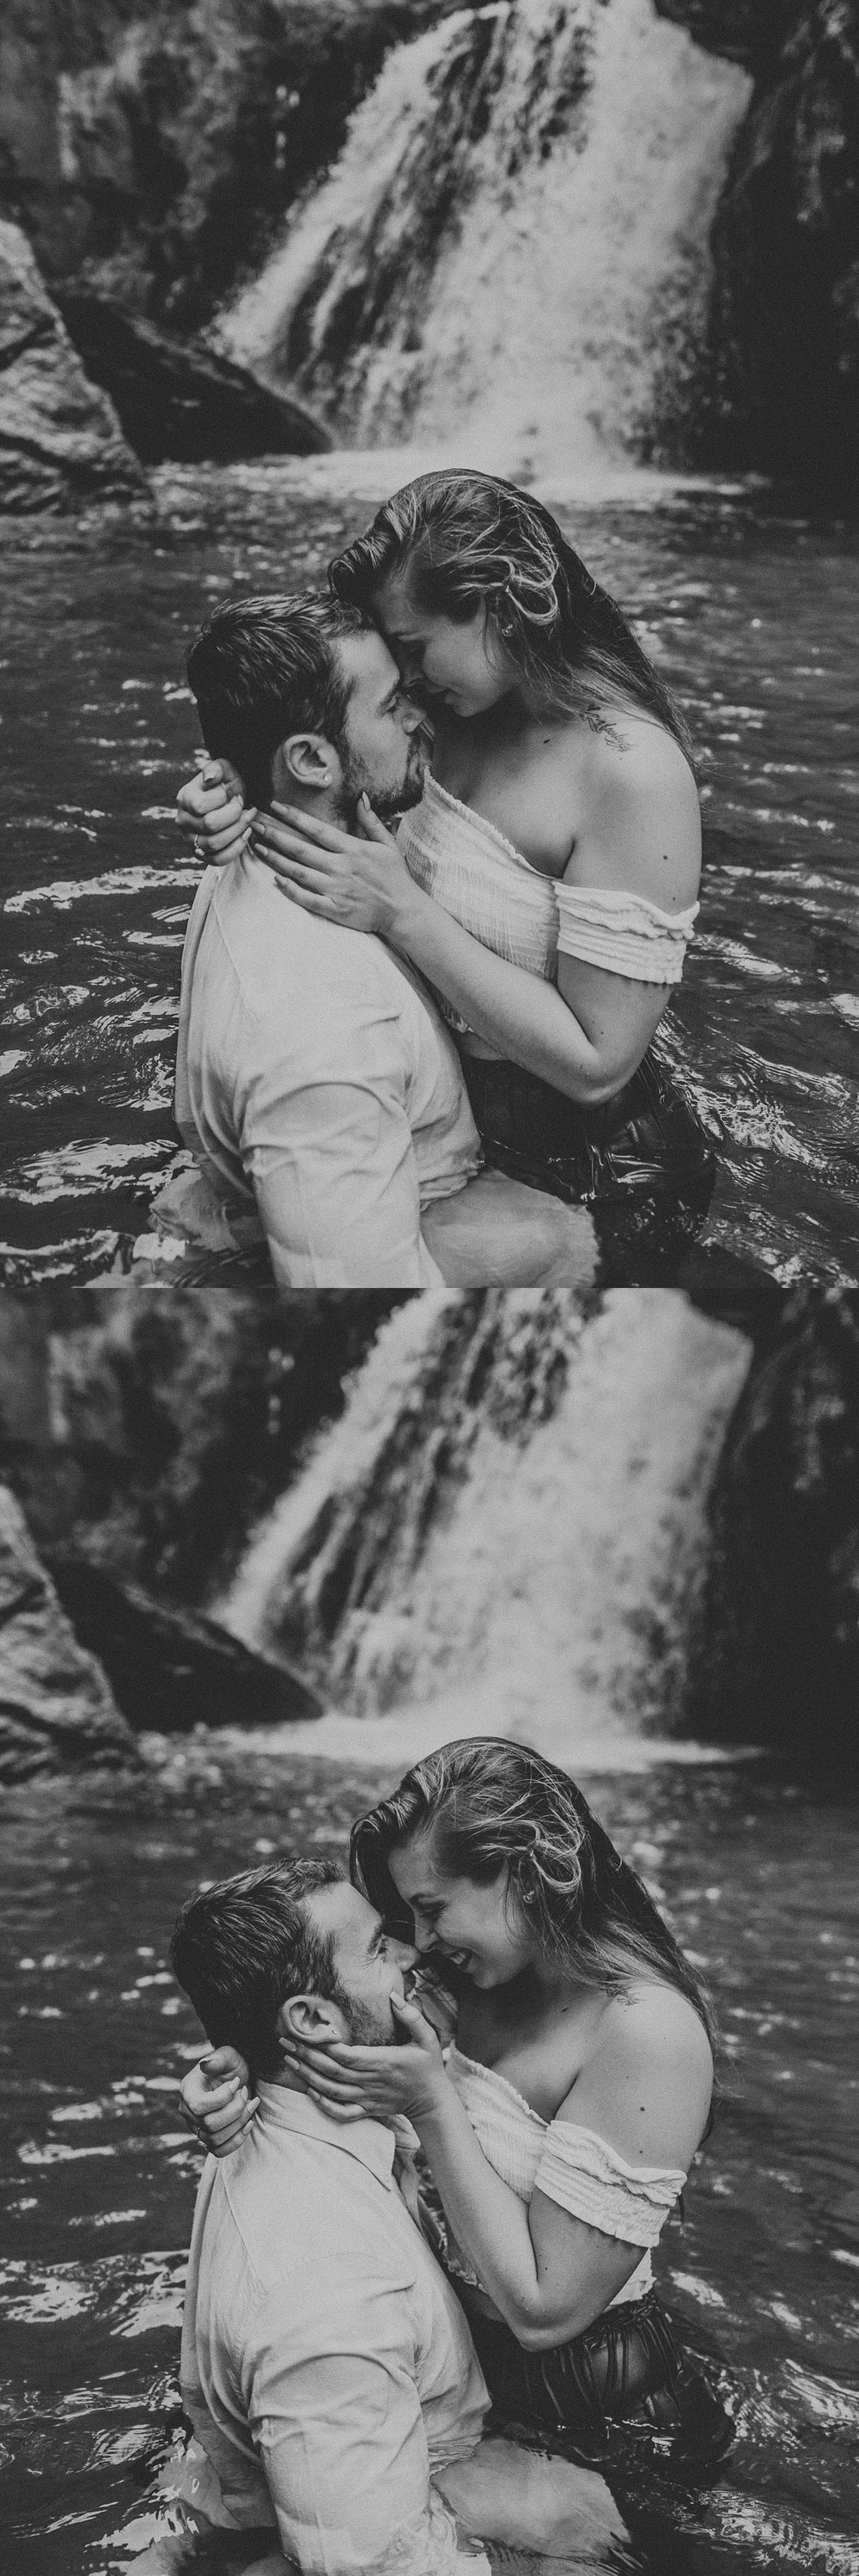 Summer Evening Boho Couples Session at Kilgore Falls Waterfalls in Pylesville Maryland_0051.jpg